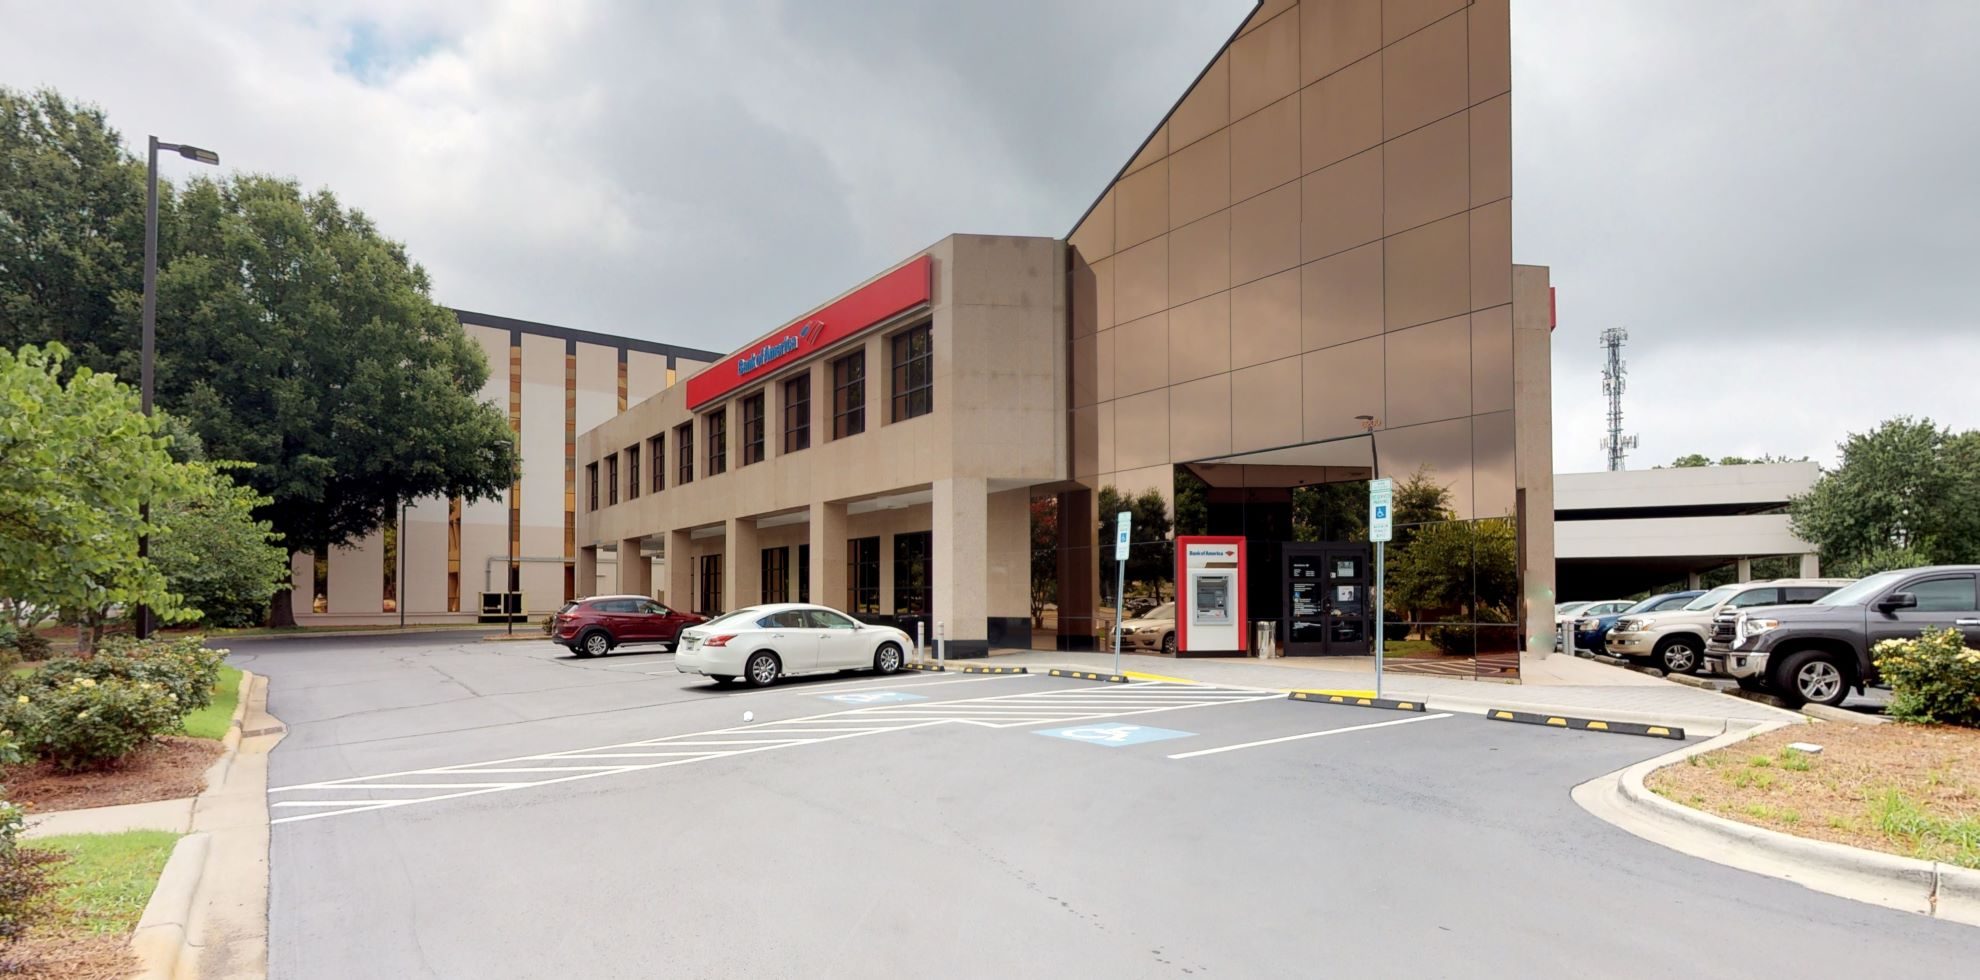 Bank of America financial center with drive-thru ATM | 6200 Fairview Rd, Charlotte, NC 28210